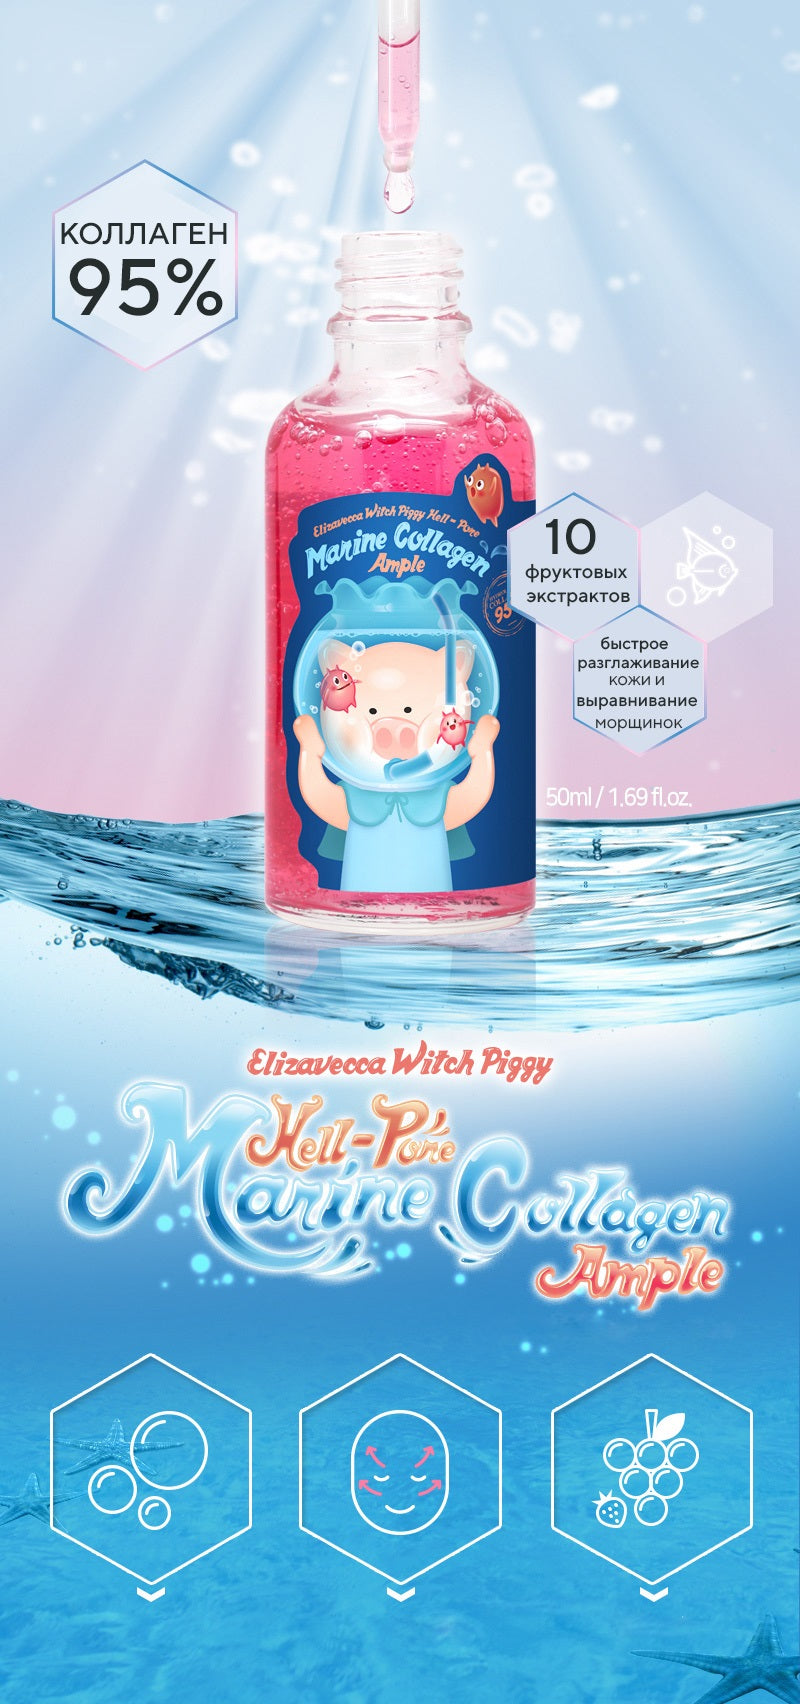 Сыворотка с морским коллагеном 95% Elizavecca Witch Piggy Hell Pore Marine Collagen Ampoule 50 ml Alchemy.com.ua